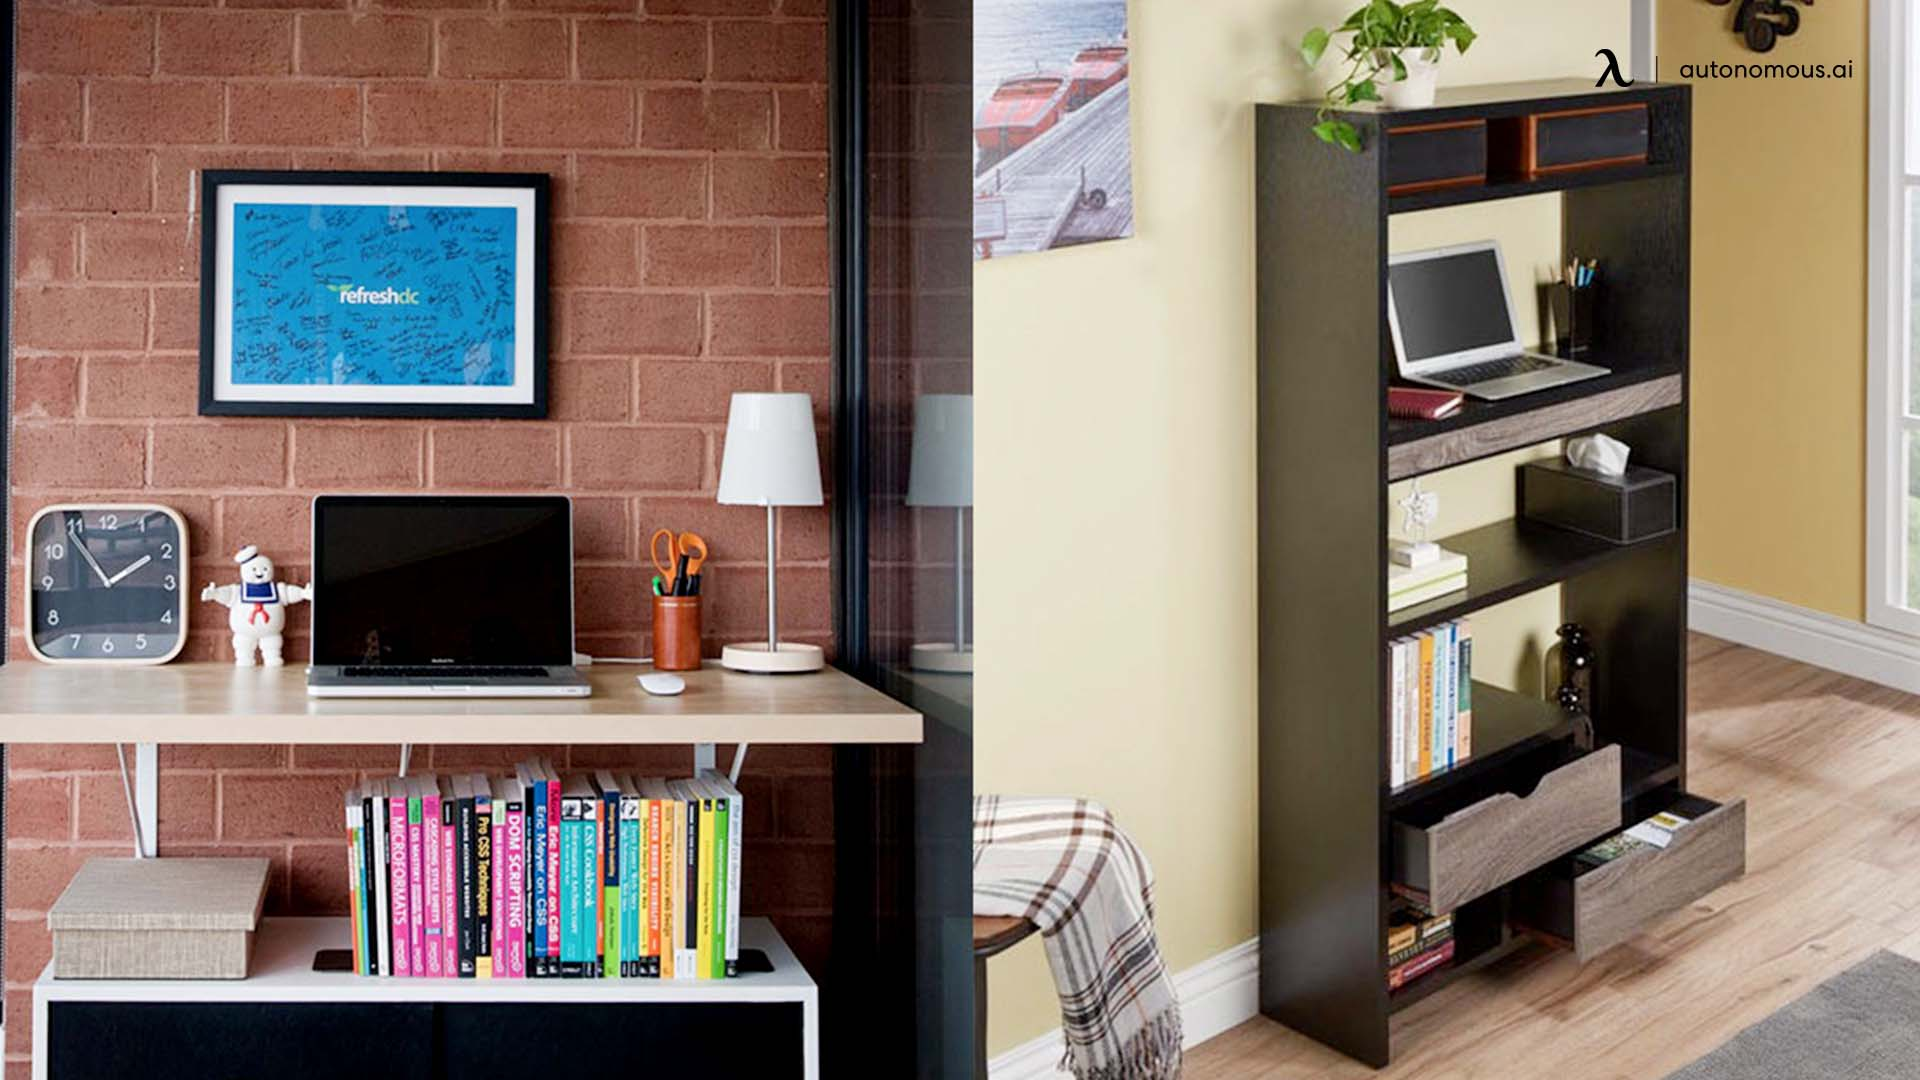 What About That Bookcase?